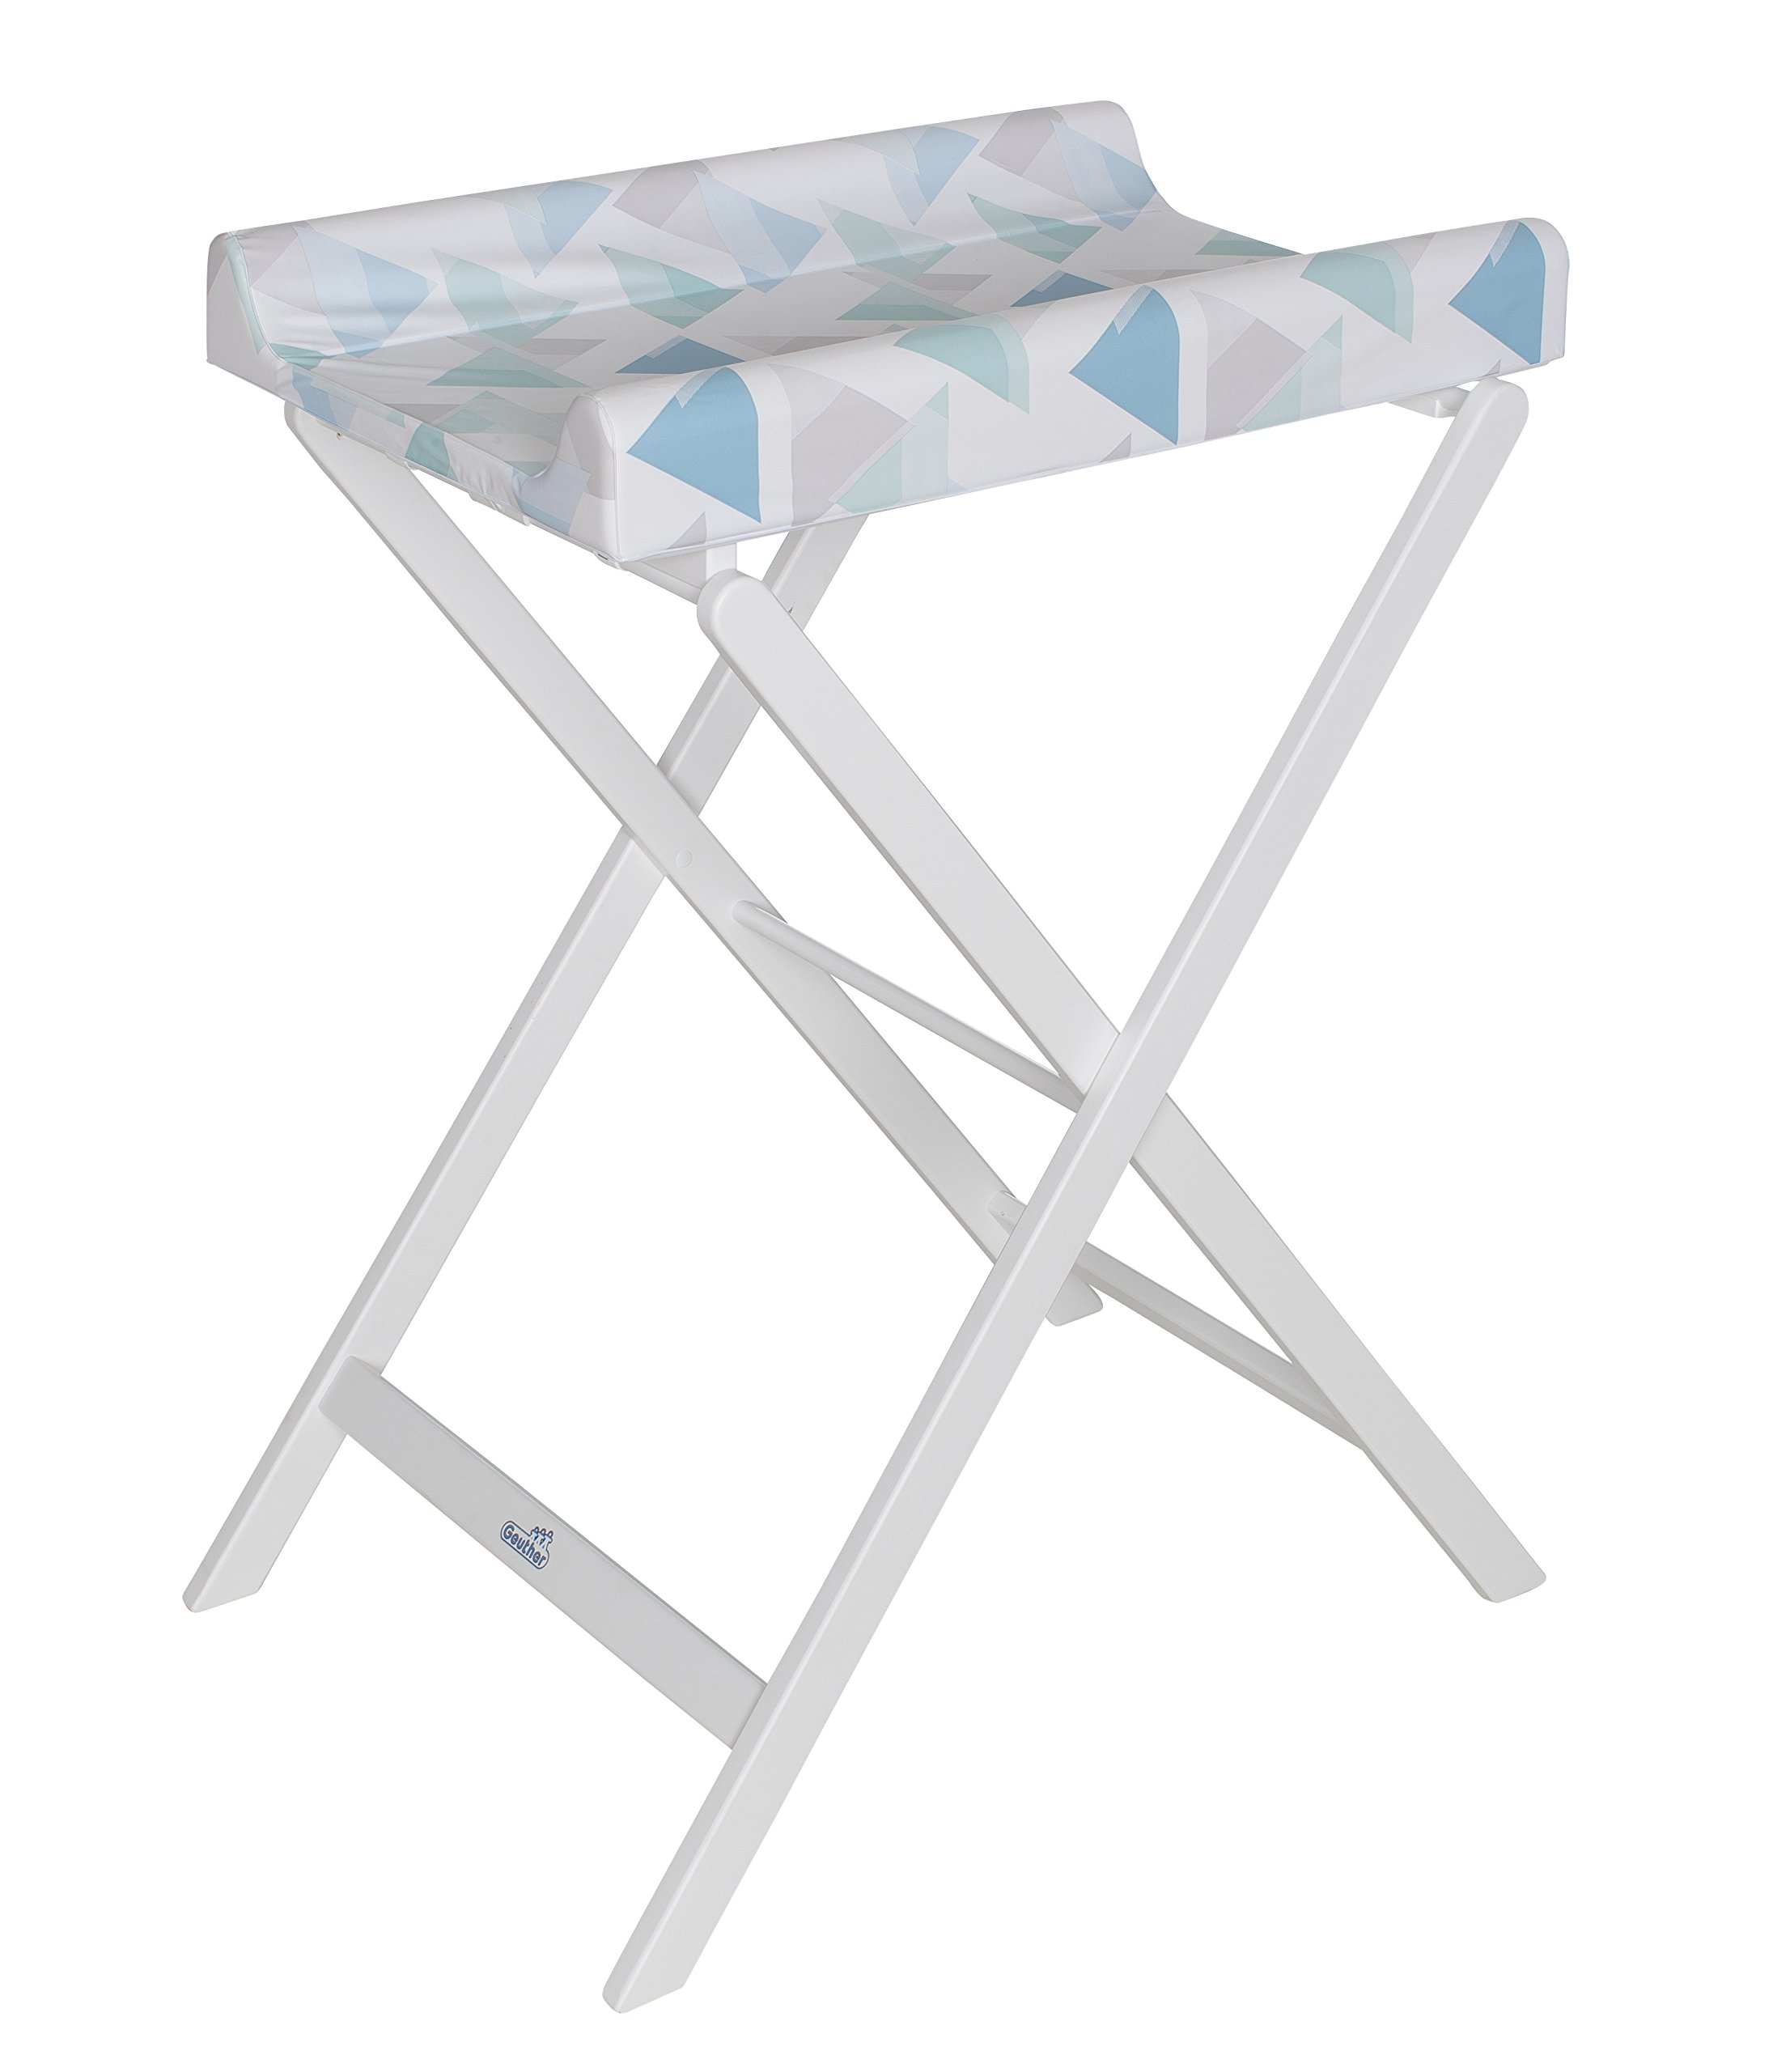 Geuther Trixi Folding Changing Table TÜV-Approved Collapsible Space Saving Geuther H x W x D: 97 x 56 x 70 cm. Includes changing mat Working height: 91 cm. 1